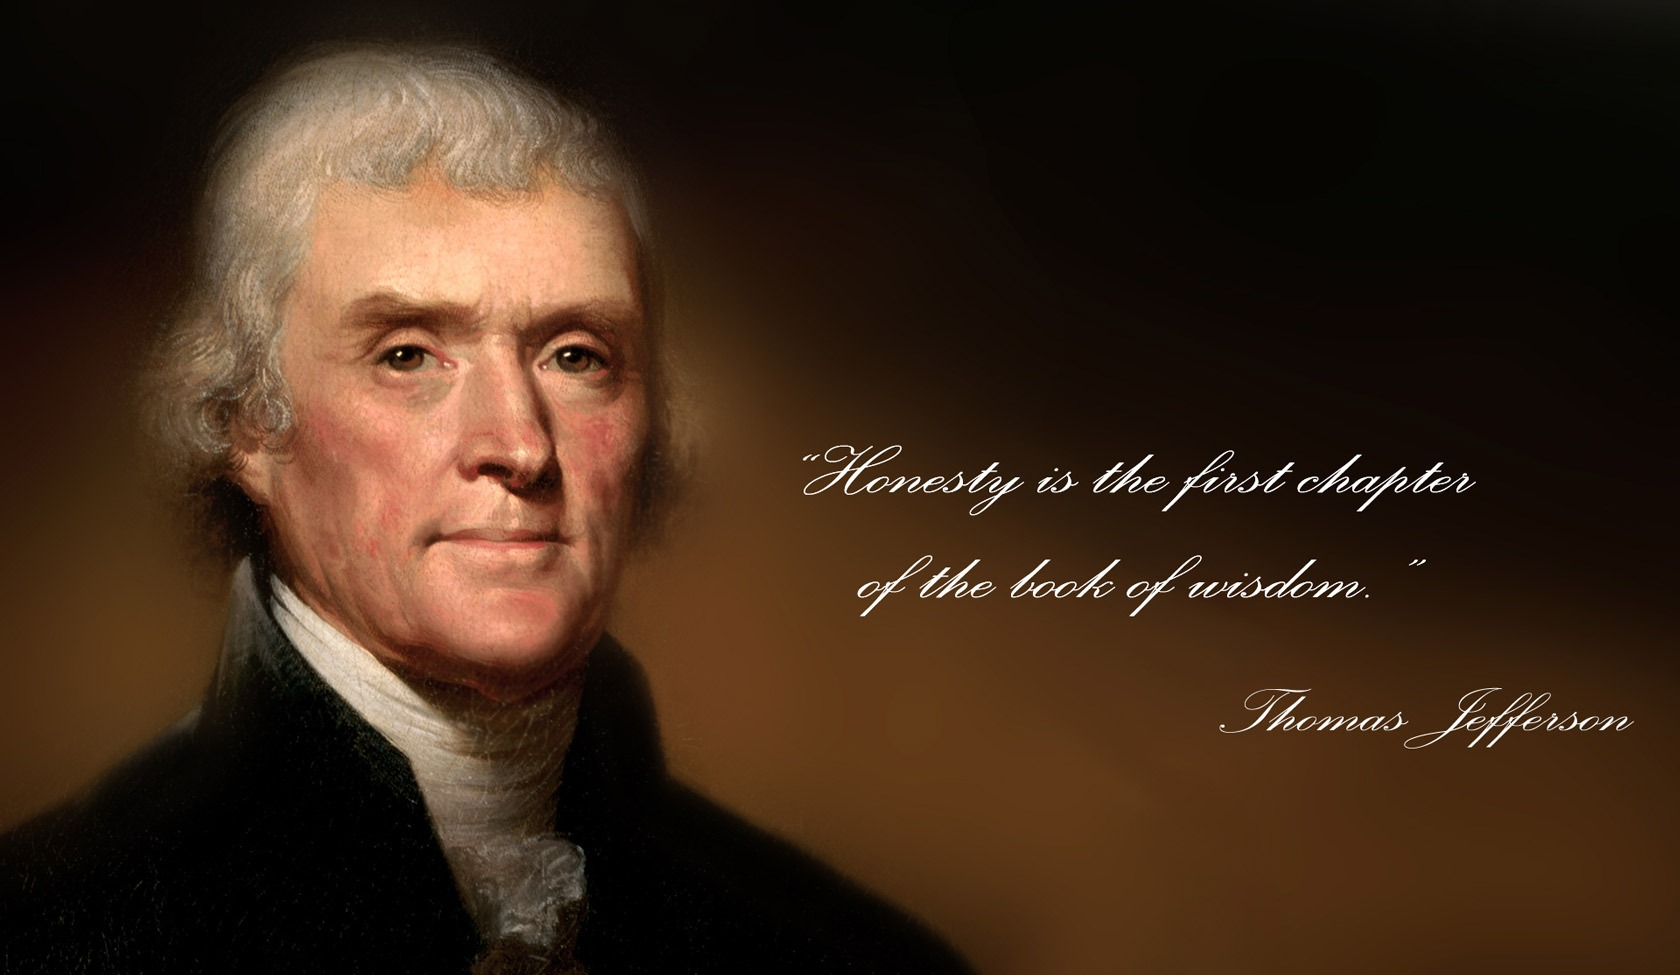 Life Liberty And The Pursuit Of Happiness Quote Alluring Life Liberty Pursuit Of Happiness  Thomas Jefferson Quotes